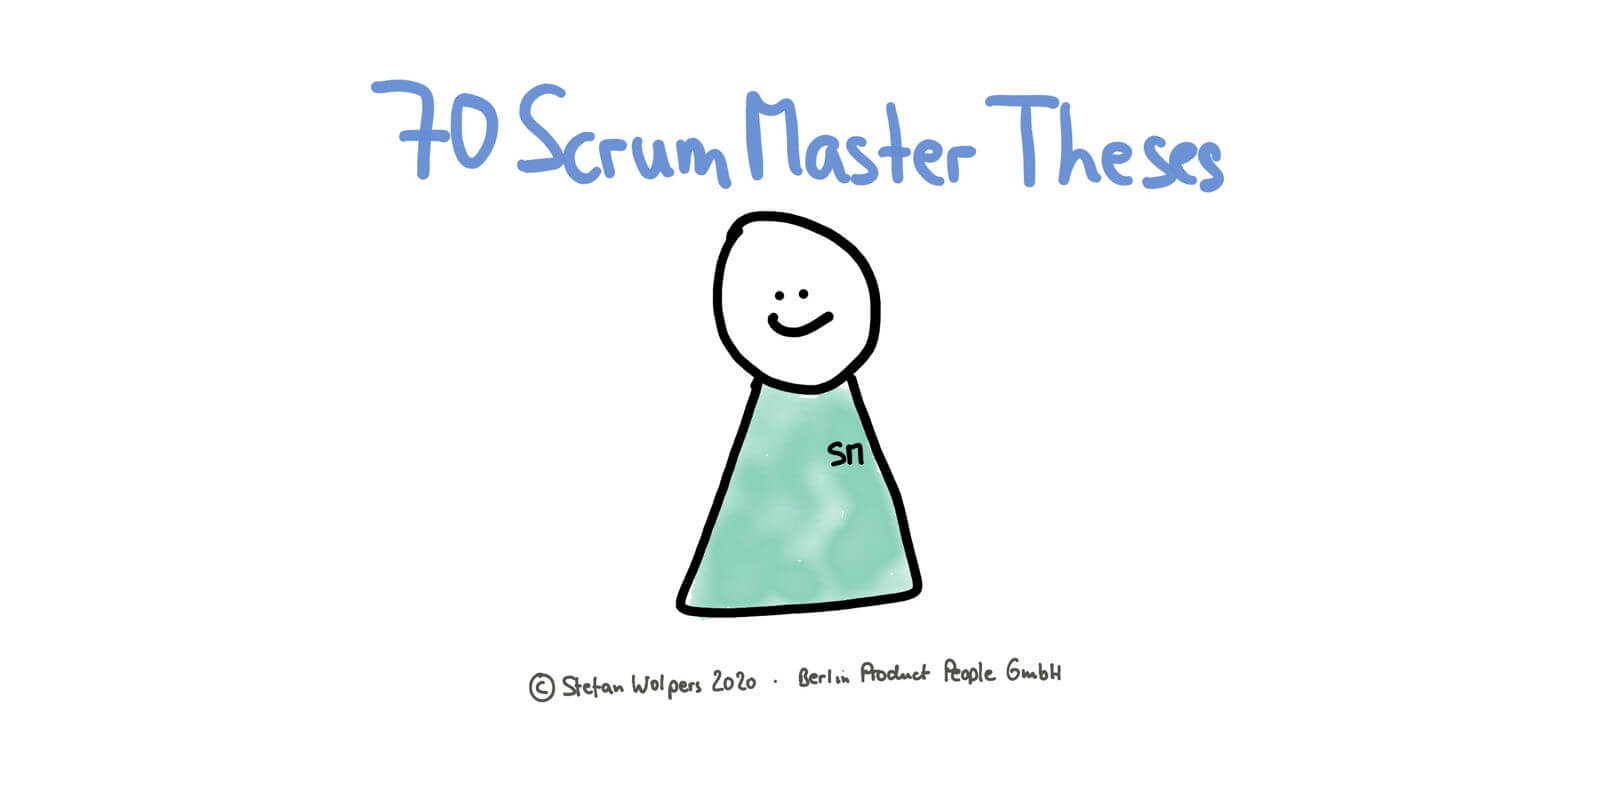 70 Scrum Master Theses